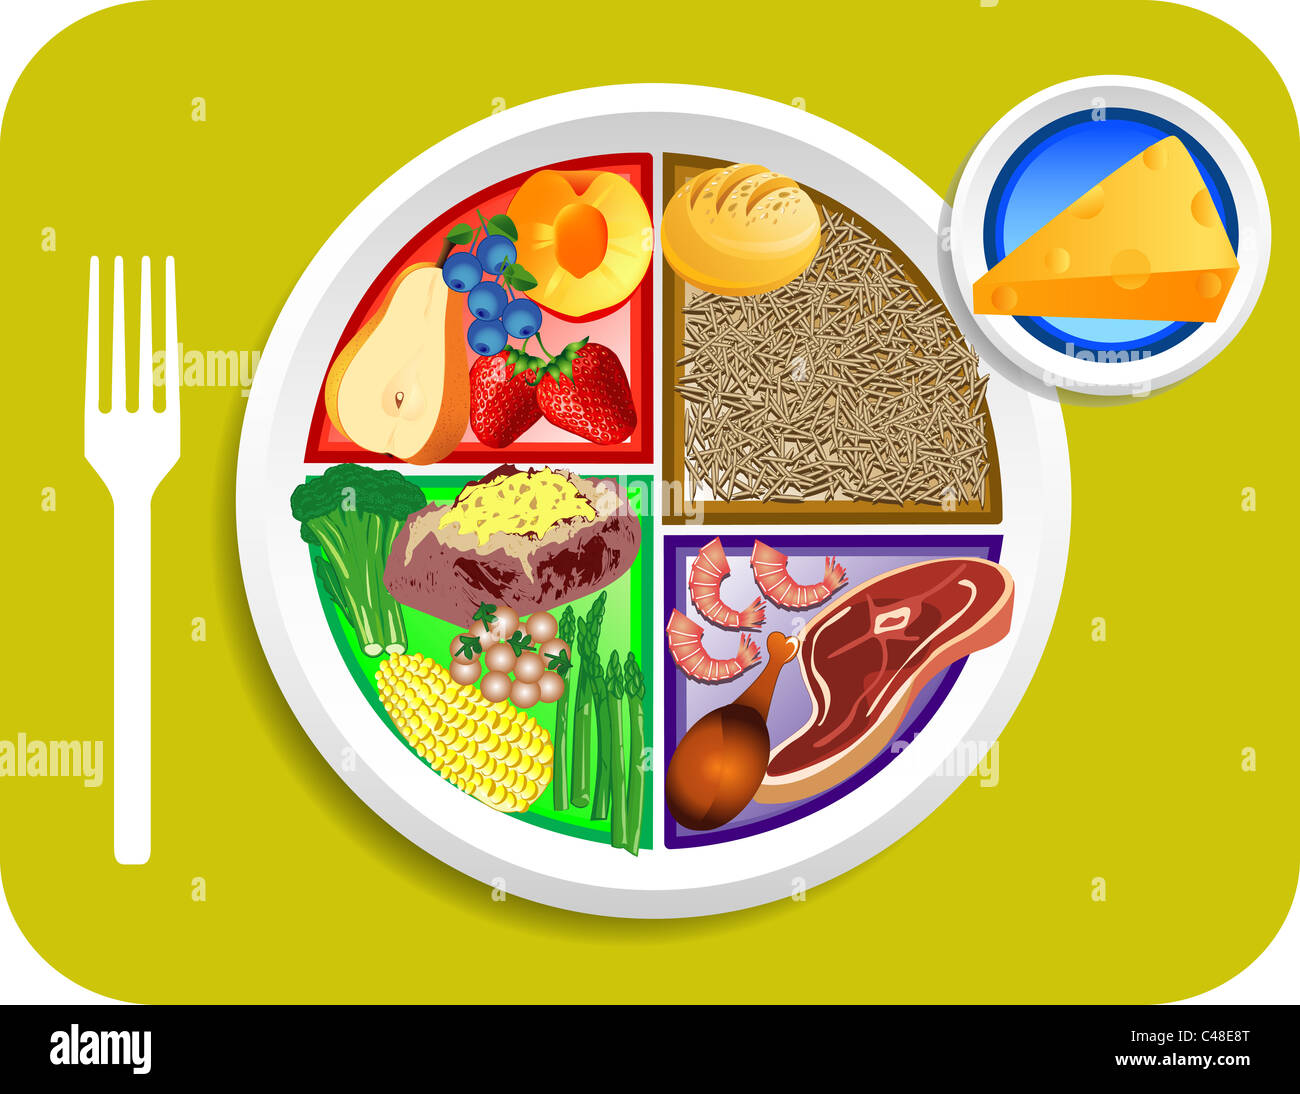 My Plate Replaces Food Pyramid I Have Some Labeled And